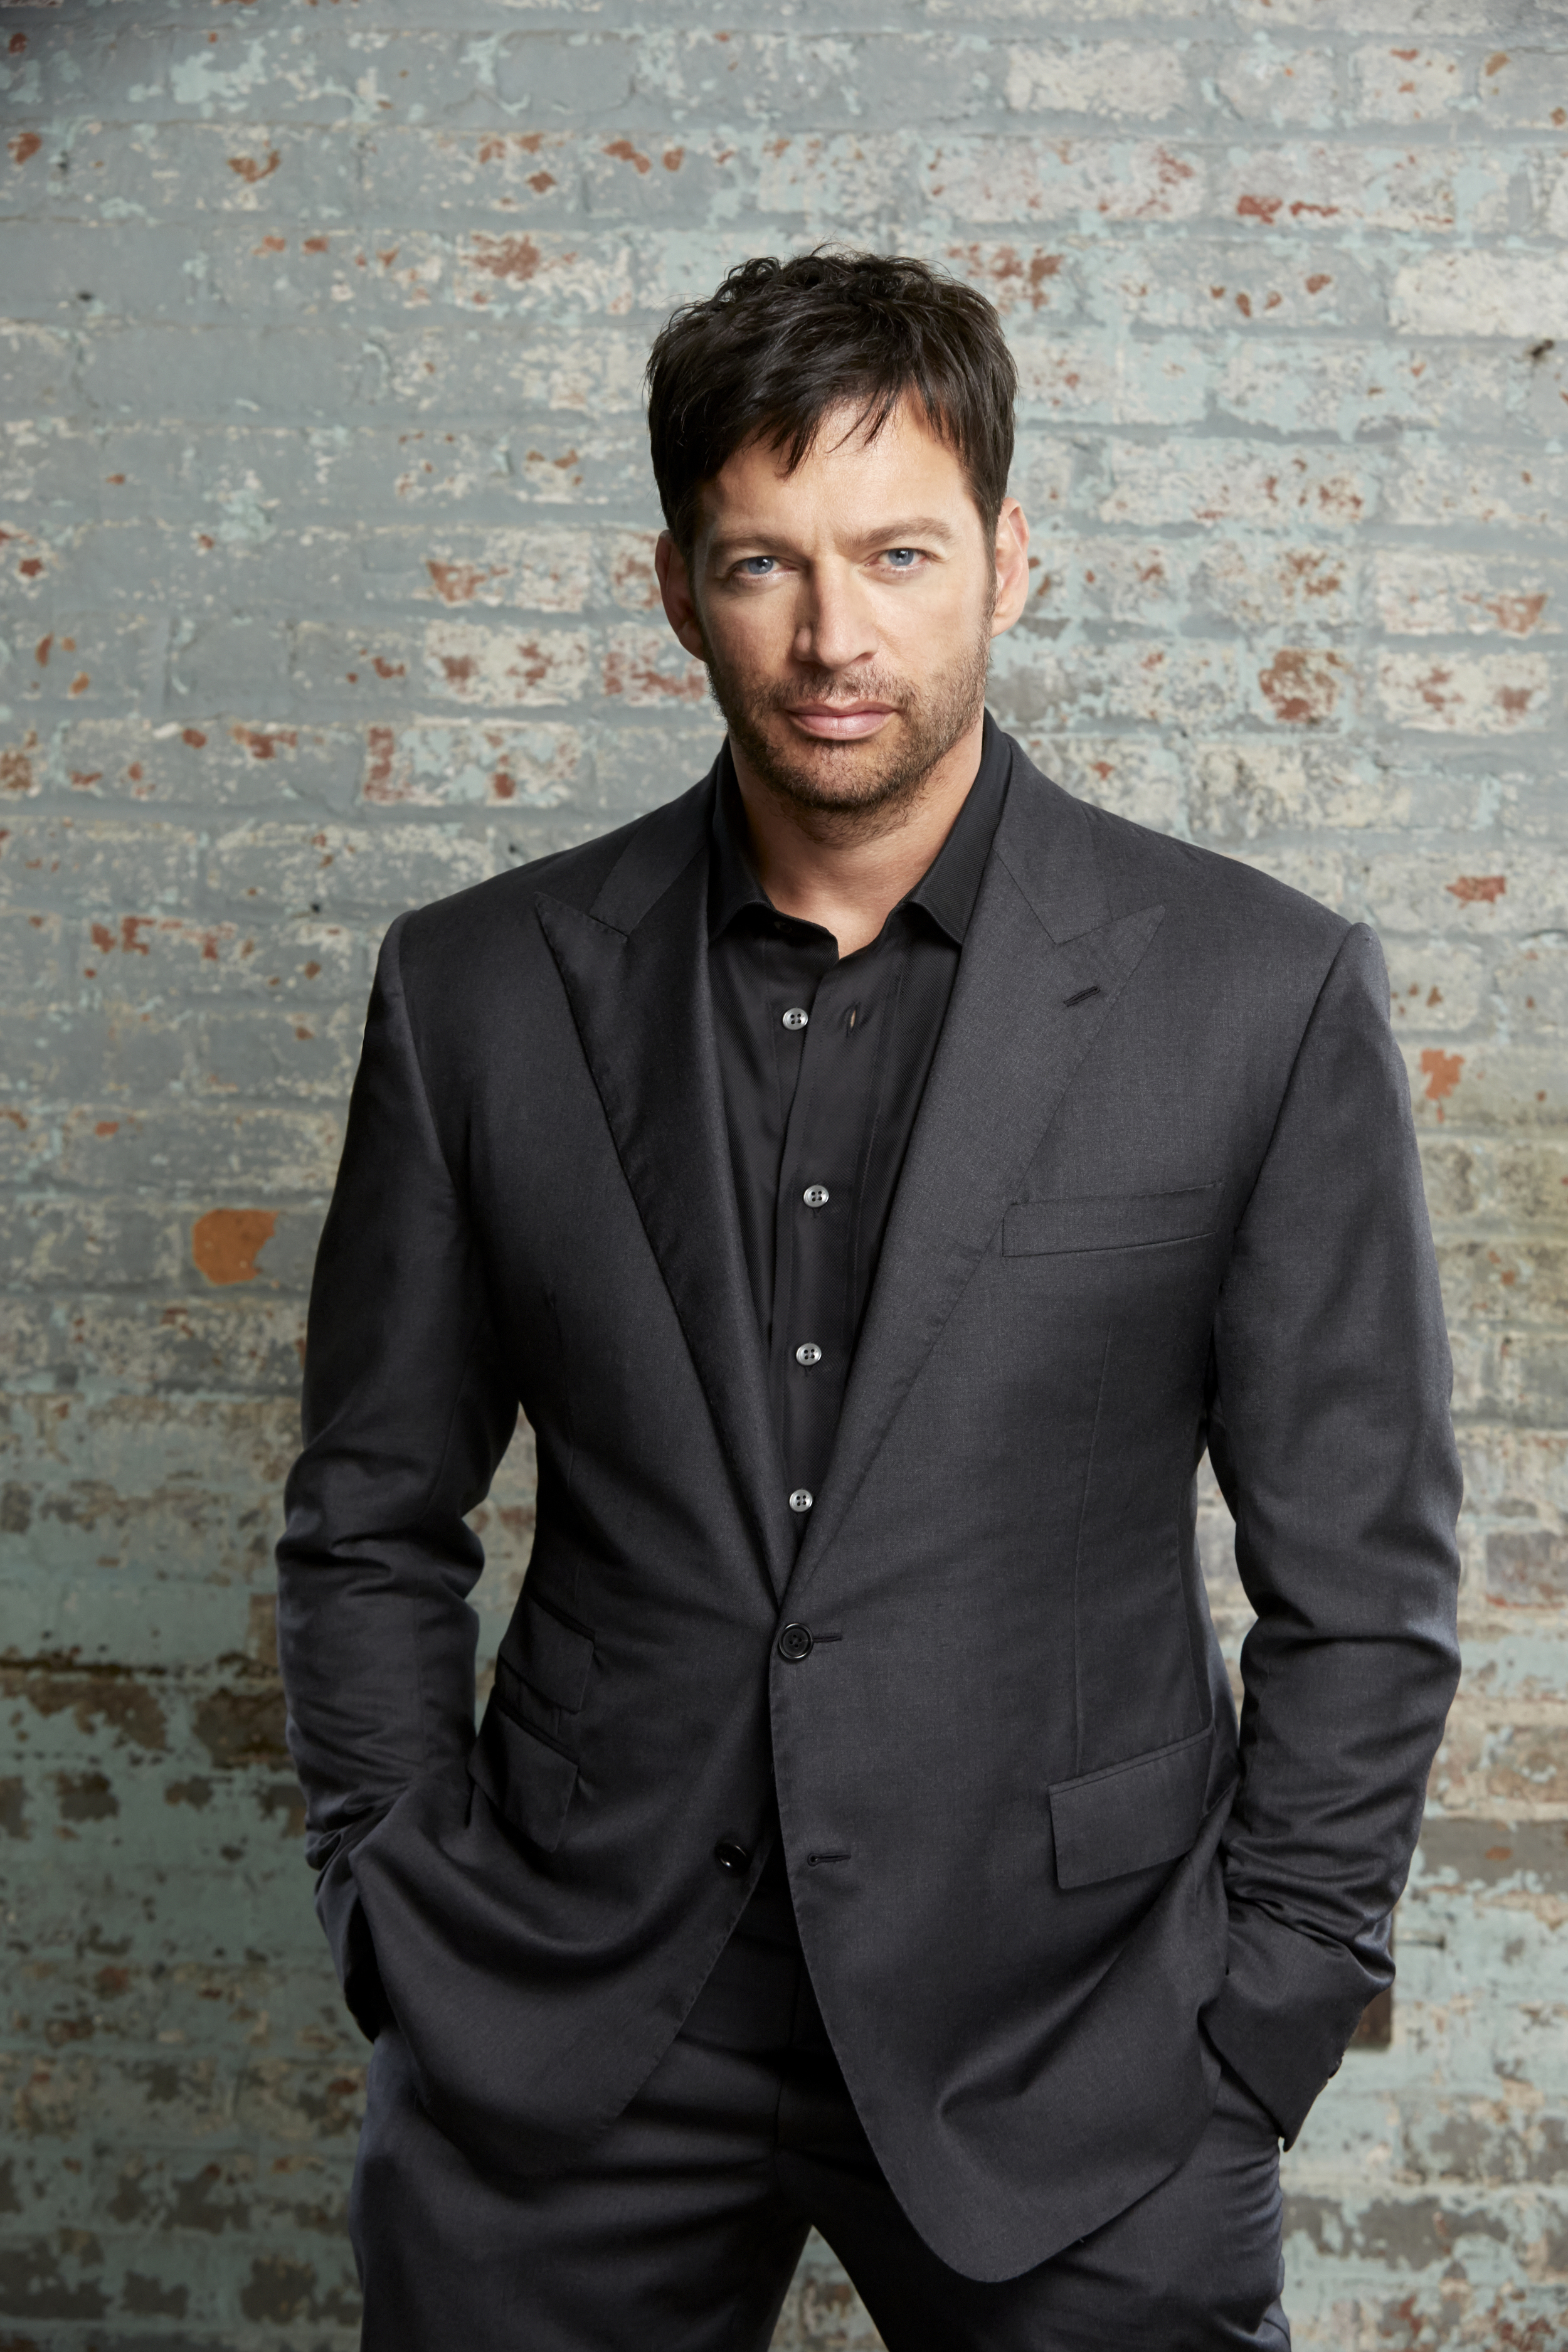 Harry Connick, Jr. (Loyola New Orleans Commencement Speaker; Photo by Loyola New Orleans)